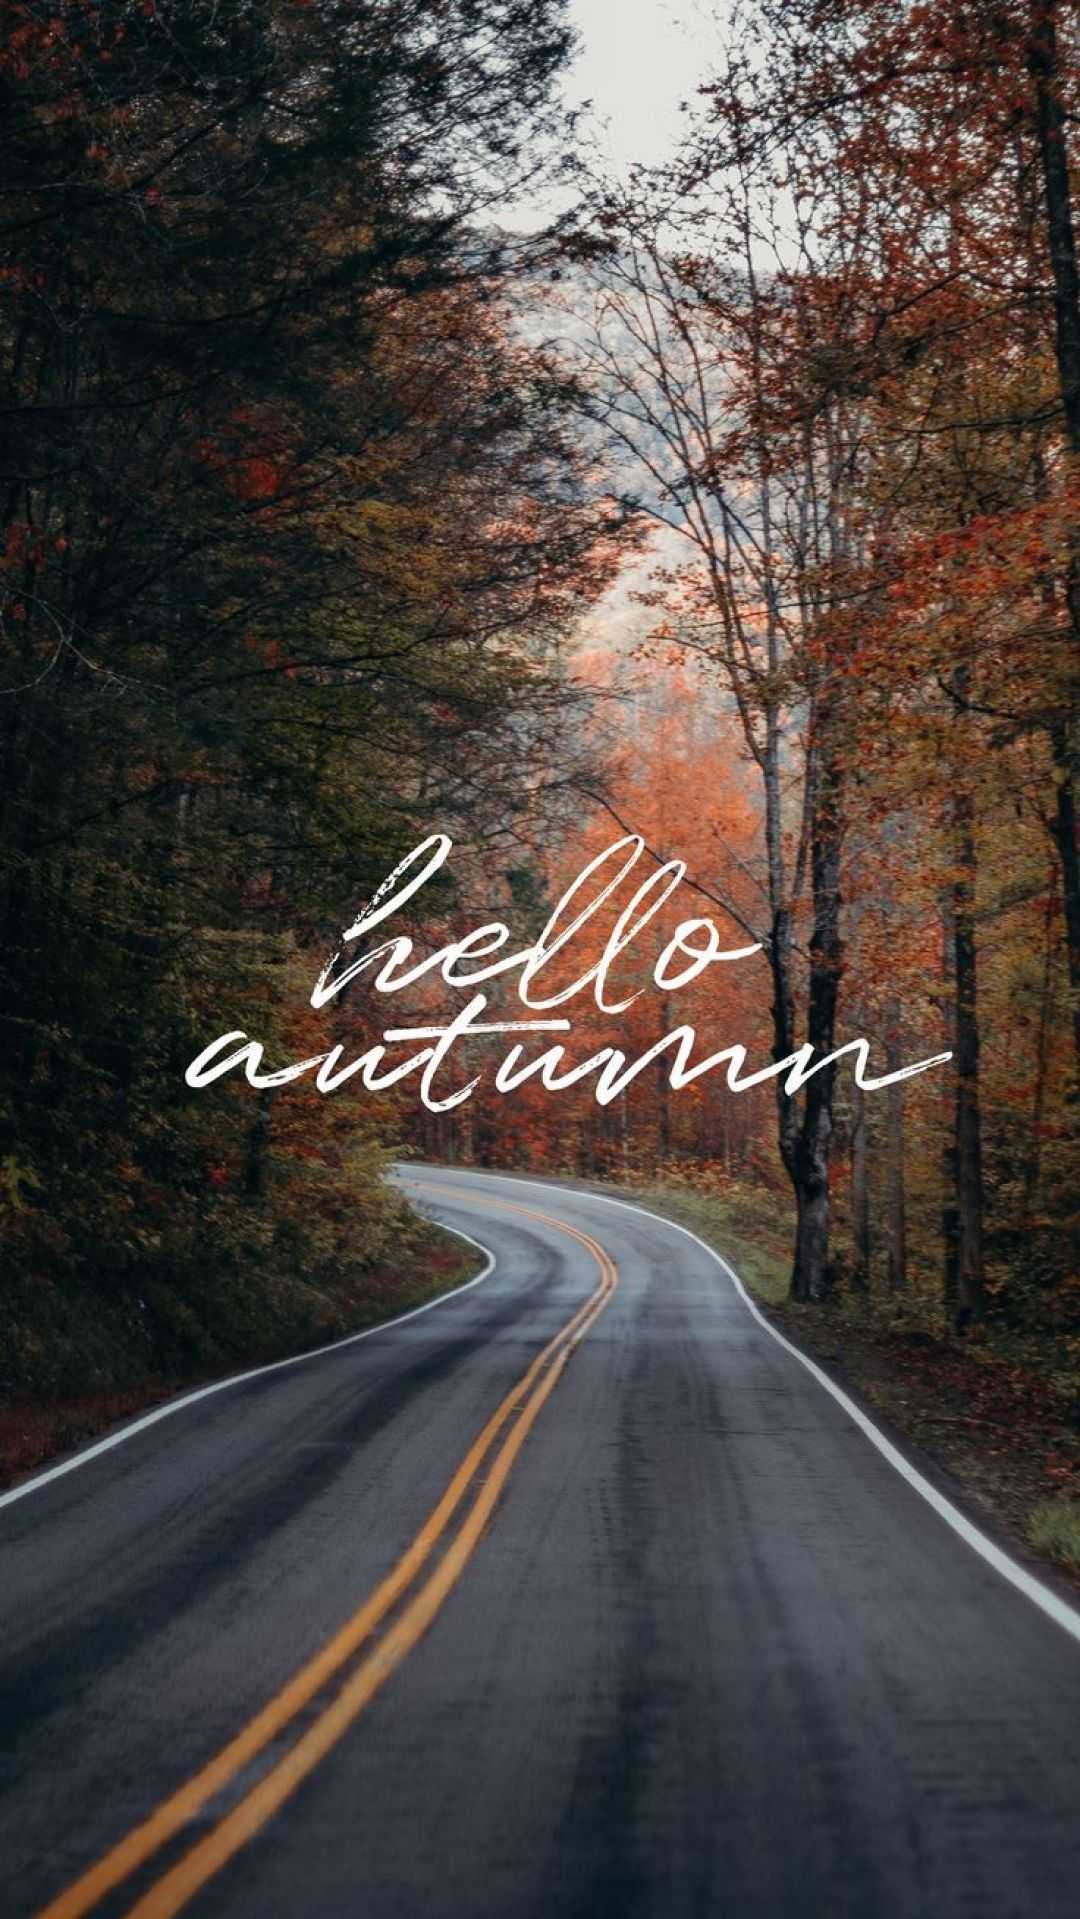 Hello Autumn Aesthetic HD Wallpapers (Desktop Background / Android / iPhone) (1080p, 4k) (38739) - 3D / Abstract